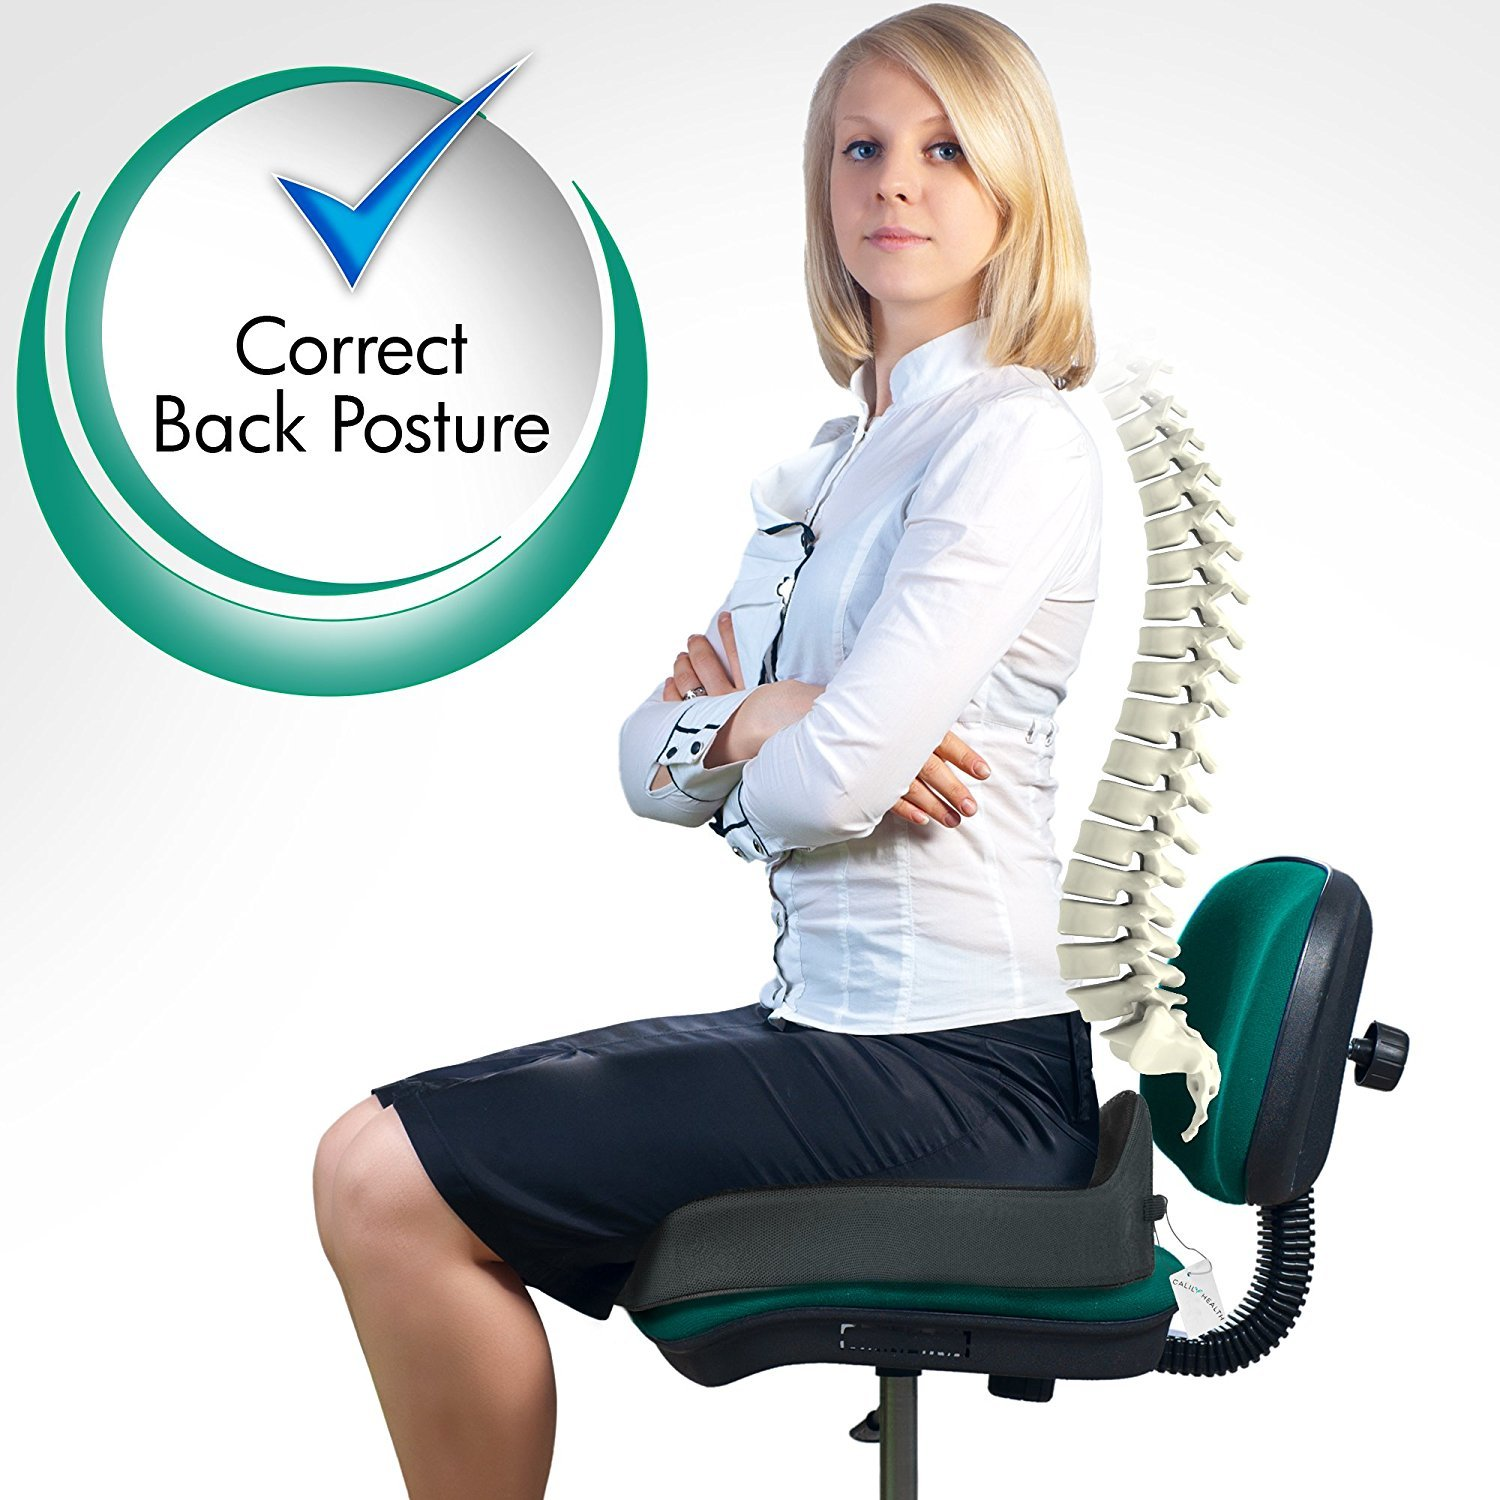 Calily Tailbone Coccyx Cushion Orthopedic Seat Cushion for Office Chair, Car, Trucks, Airplane, etc. – Amazing Relief for Lower Back Pain, Tailbone, Sciatica, Pelvic Pain, Prostate, etc. [UPGRADED]